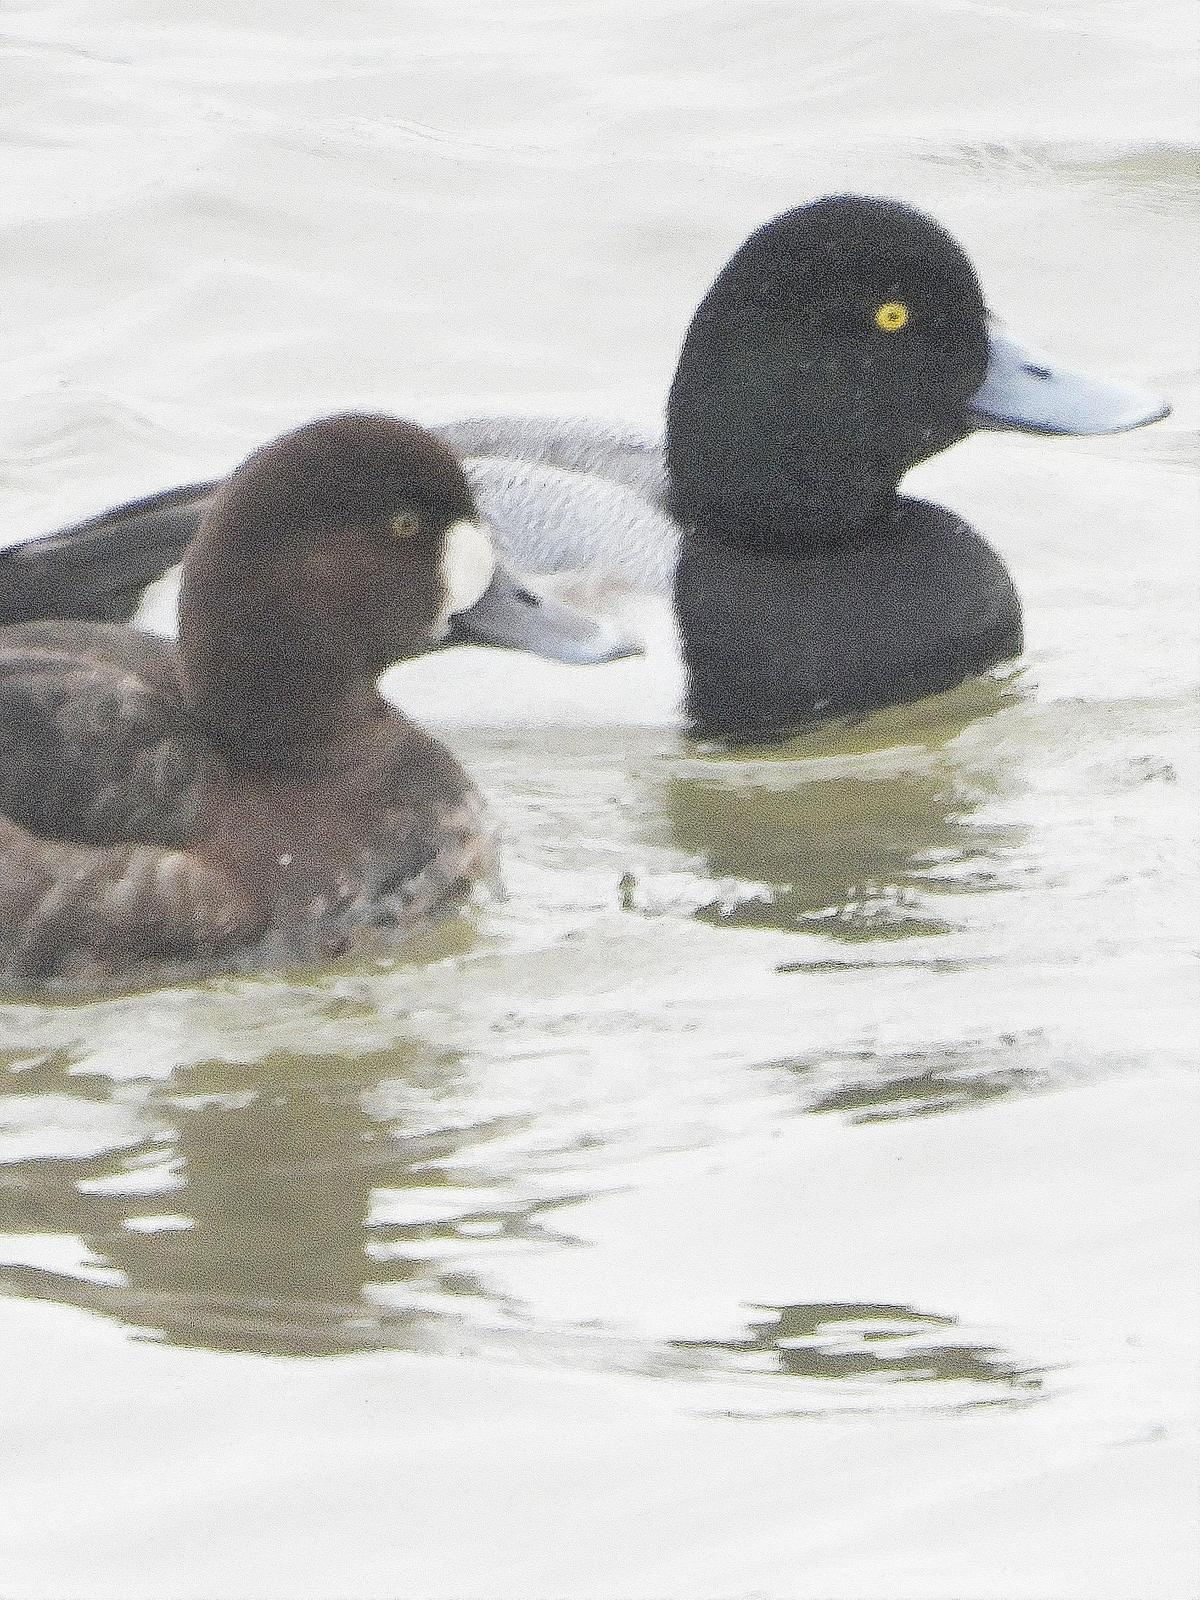 Greater Scaup Photo by Dan Tallman